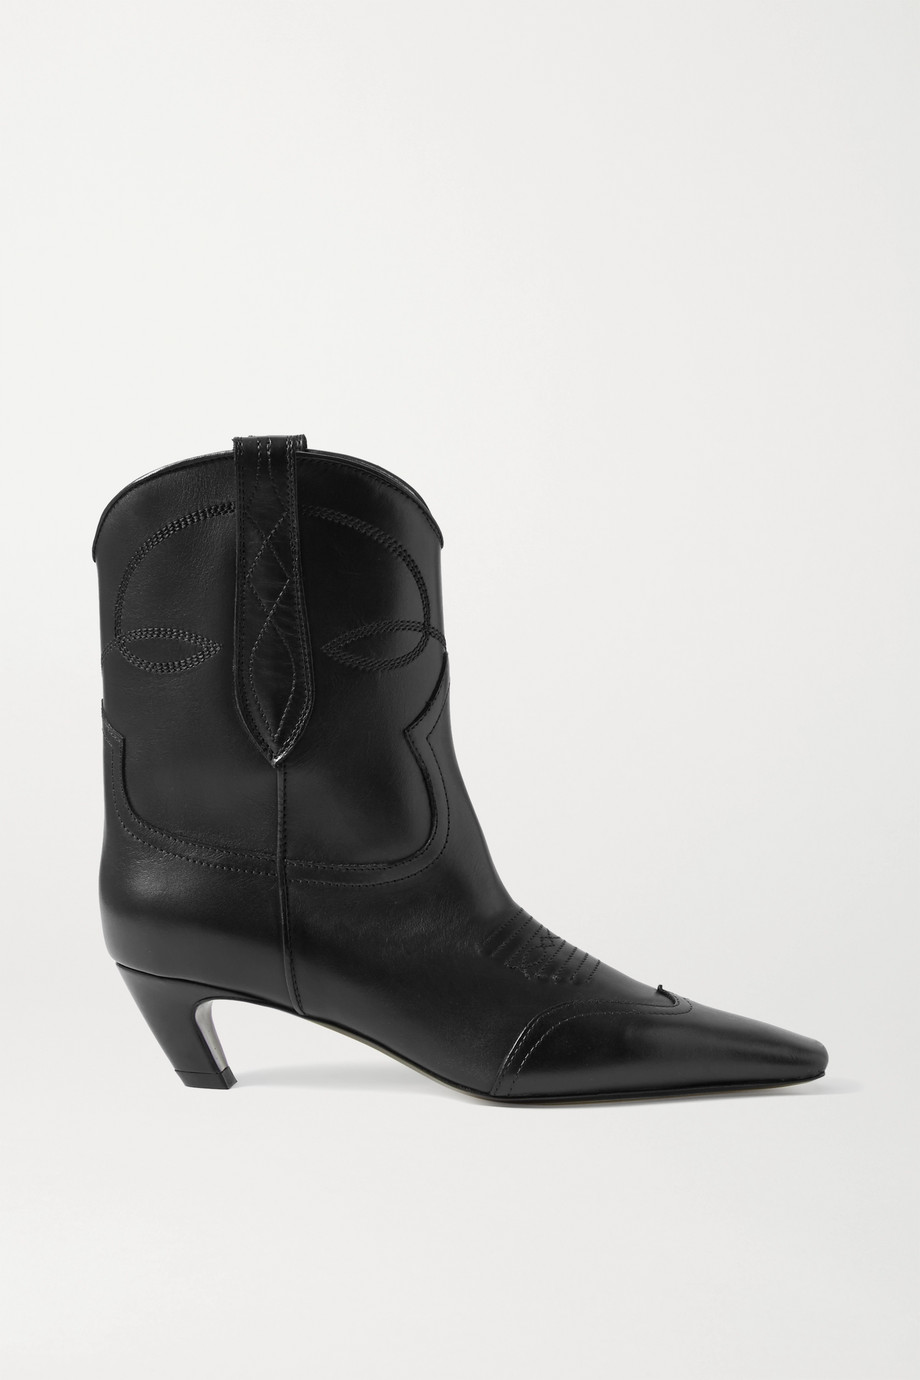 Khaite Dallas leather ankle boots